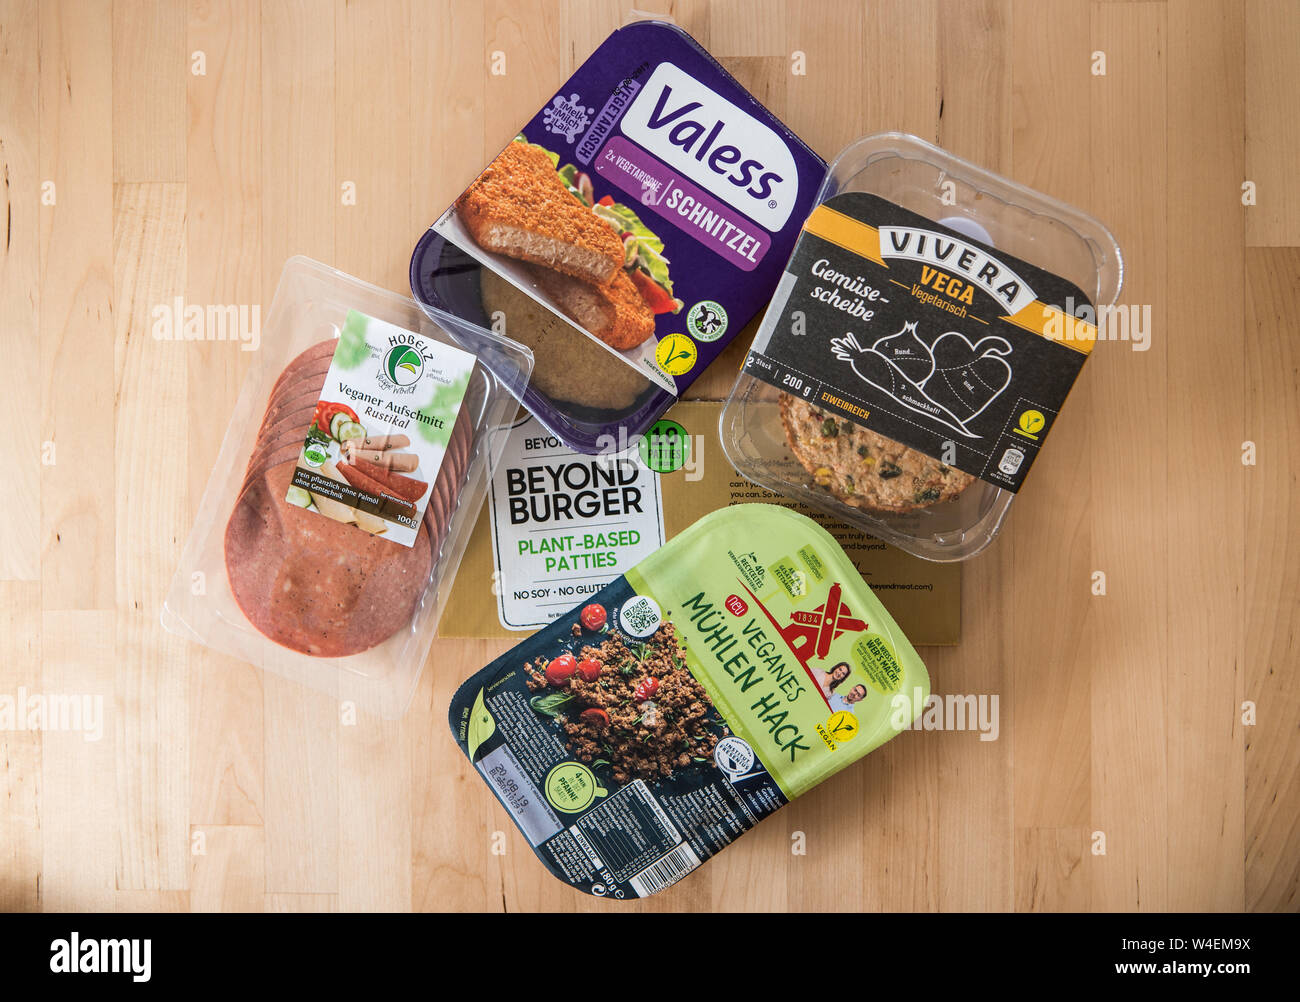 22 July 2019 Hessen Frankfurt Main Various Vegan And Vegetarian Meat Substitutes Are Packaged On The Table More And More Meat Replacement Products Are Coming Onto The German Market The Substitute Products Include